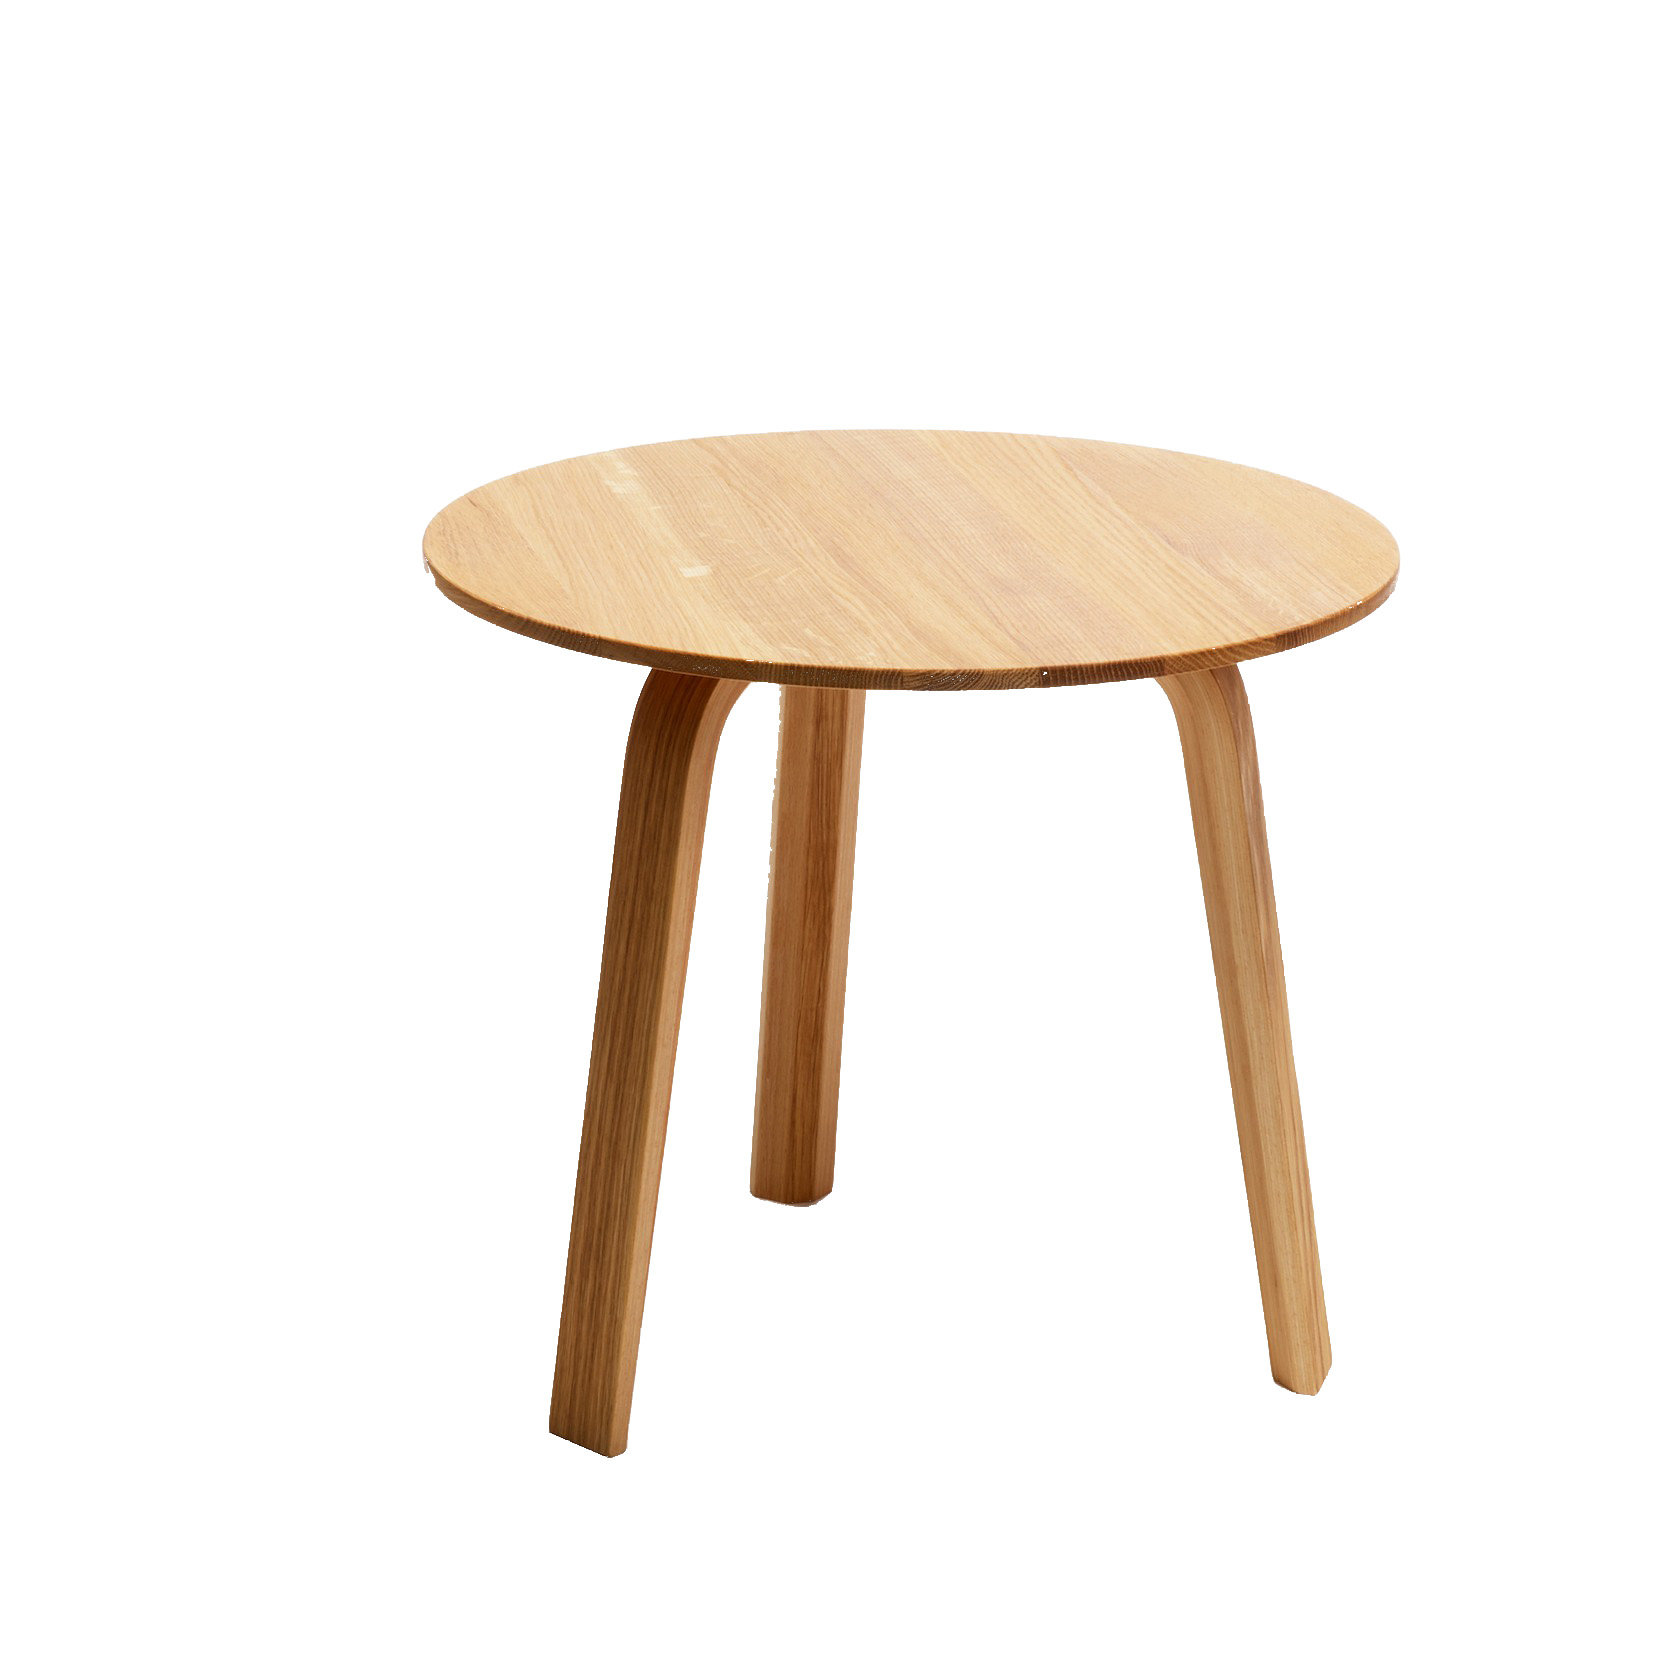 Bella Coffee Table - 45/39 - Eiche natur